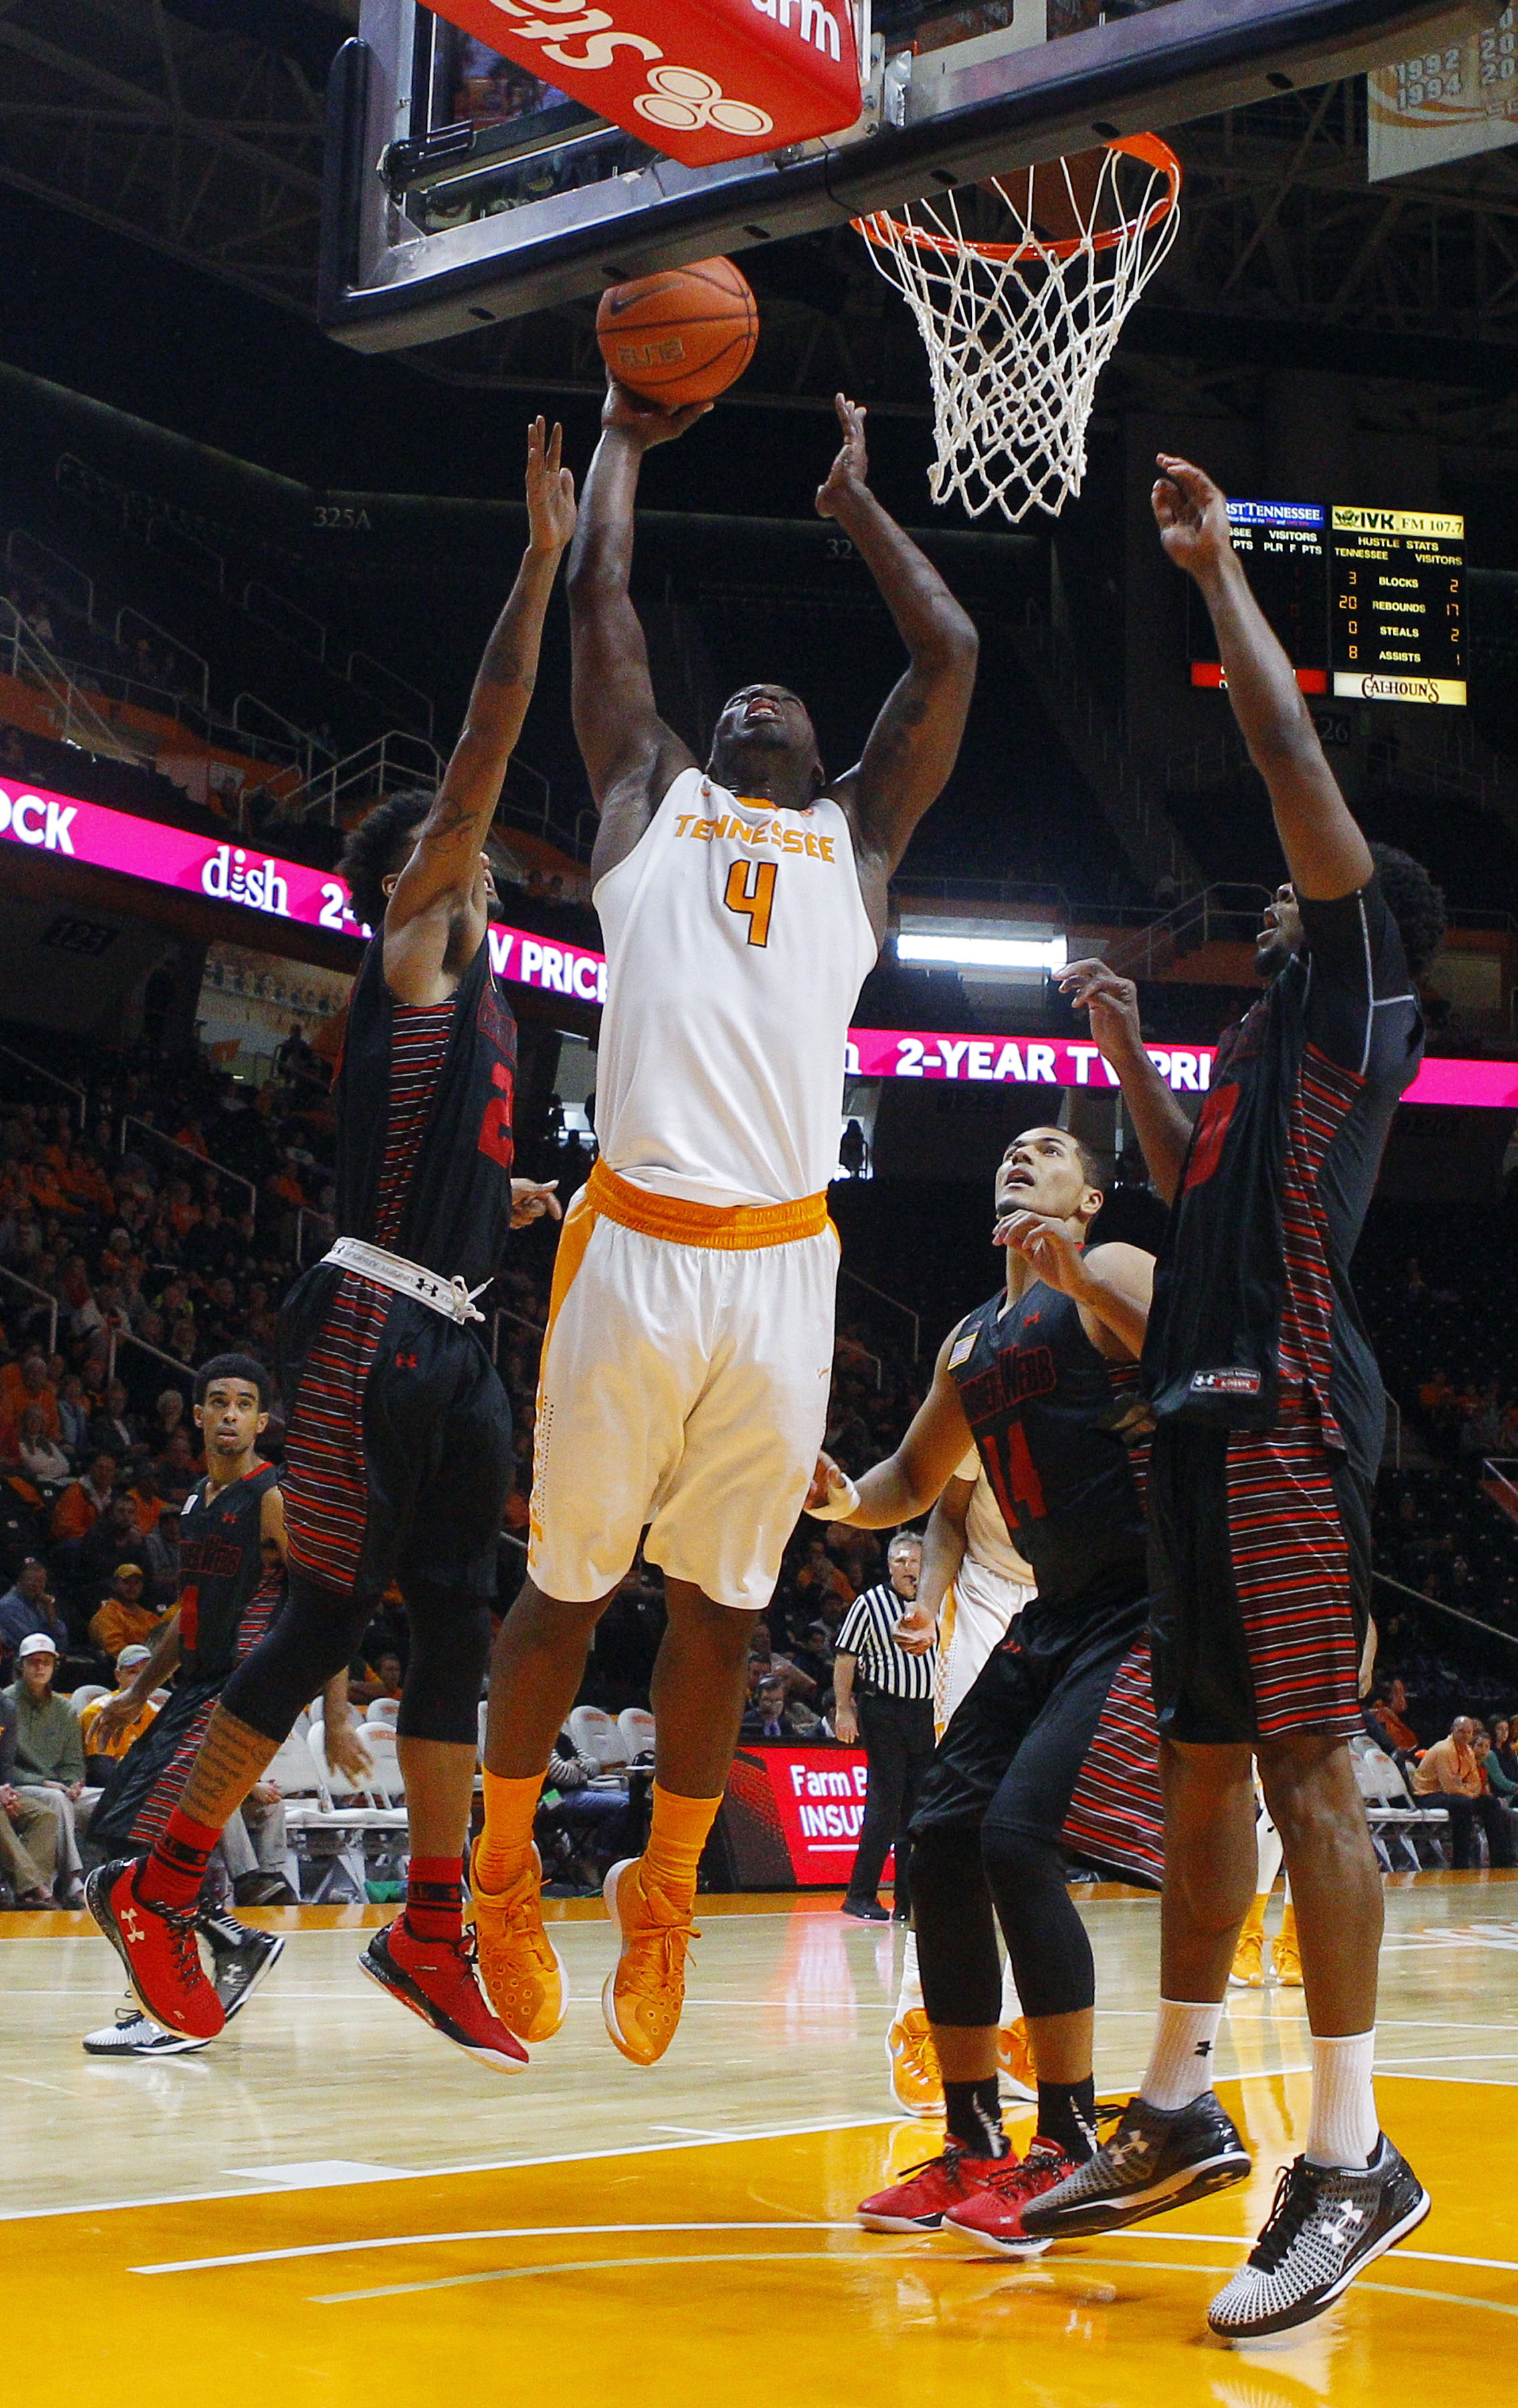 Tennessee forward Armani Moore (4) shoots between Gardner-Webb guard Eric Jamison (2), forward Brandon Miller (14) and guard Jamaal Robateau (0) during an NCAA college basketball game Sunday, Nov. 22, 2015. (Wade Payne/Knoxville News Sentinel via AP)